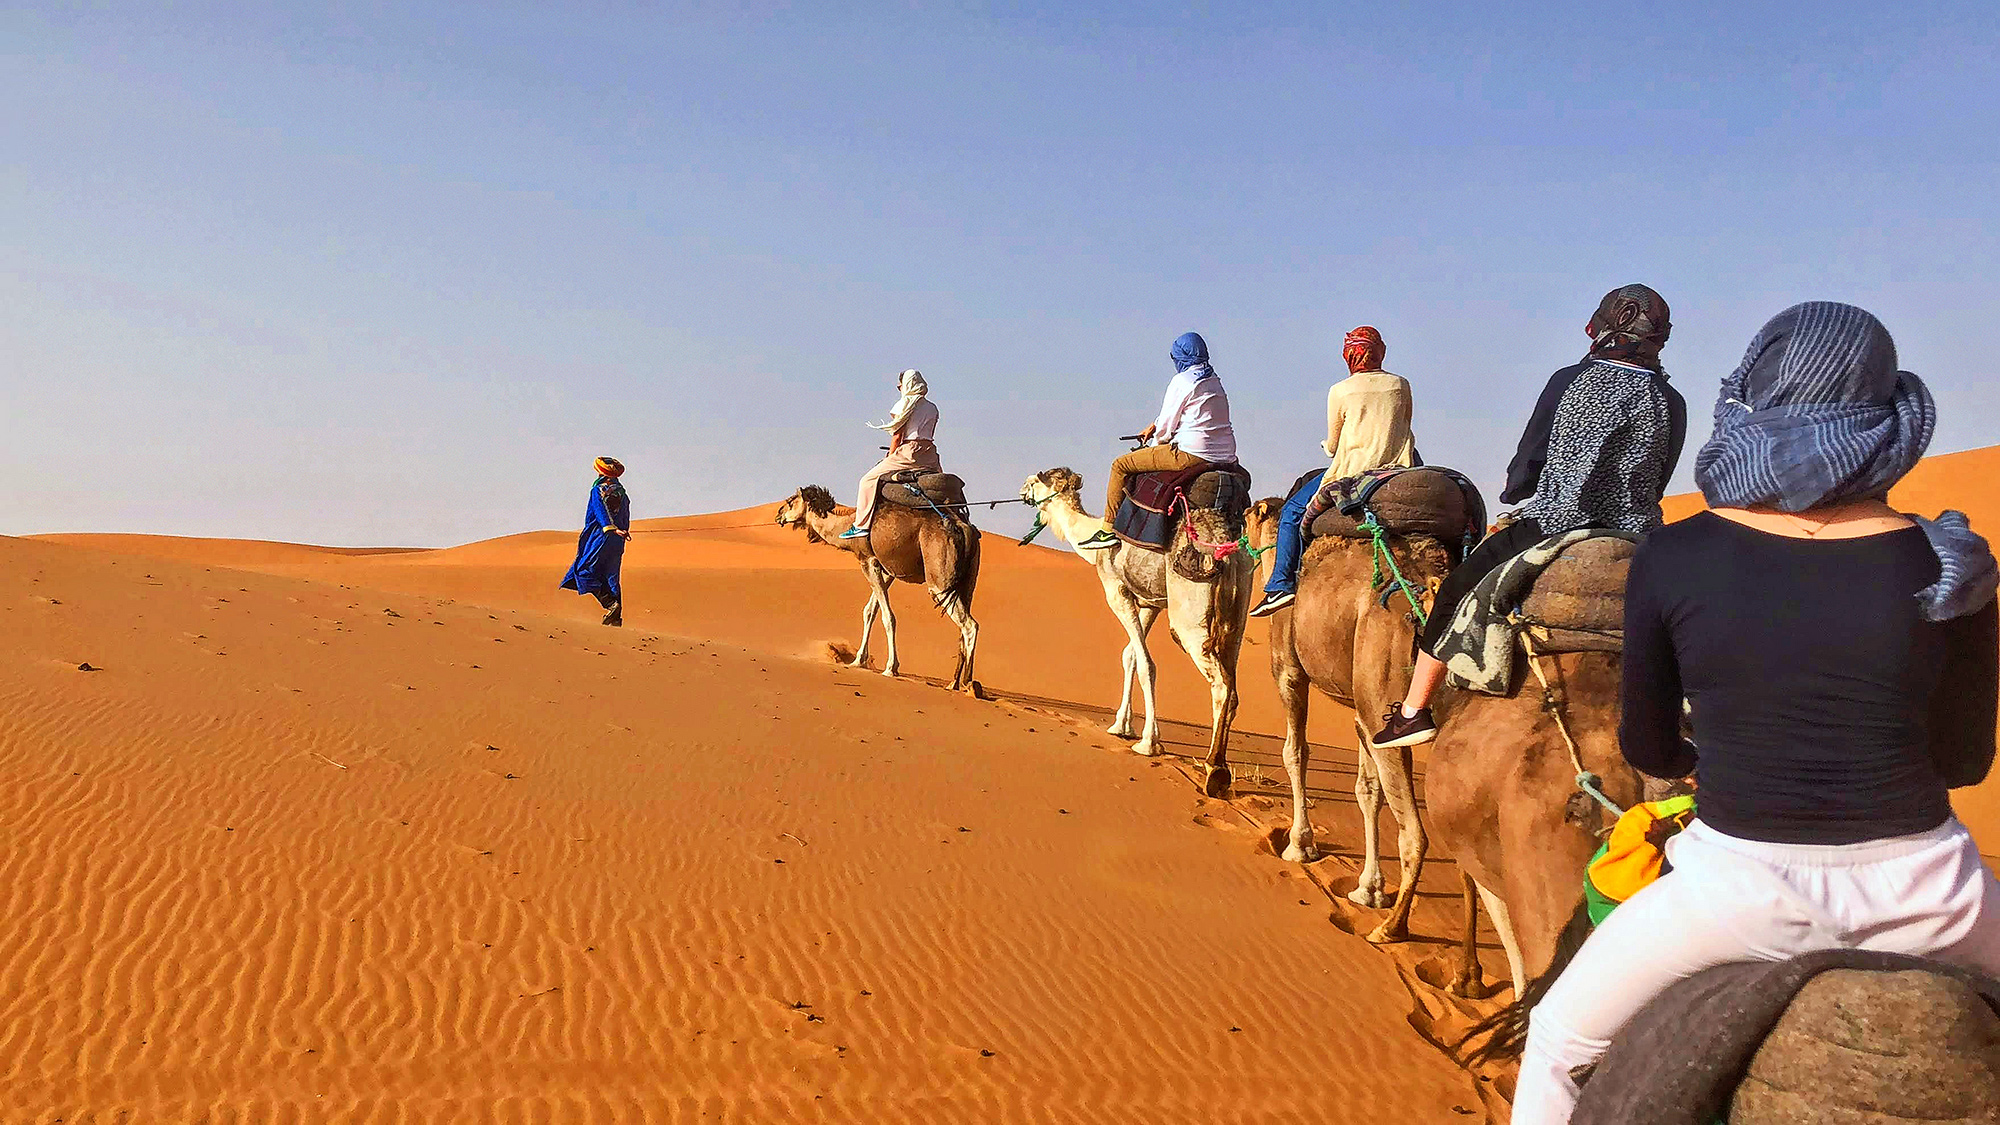 caravan of travelers riding camels in the Moroccan desert